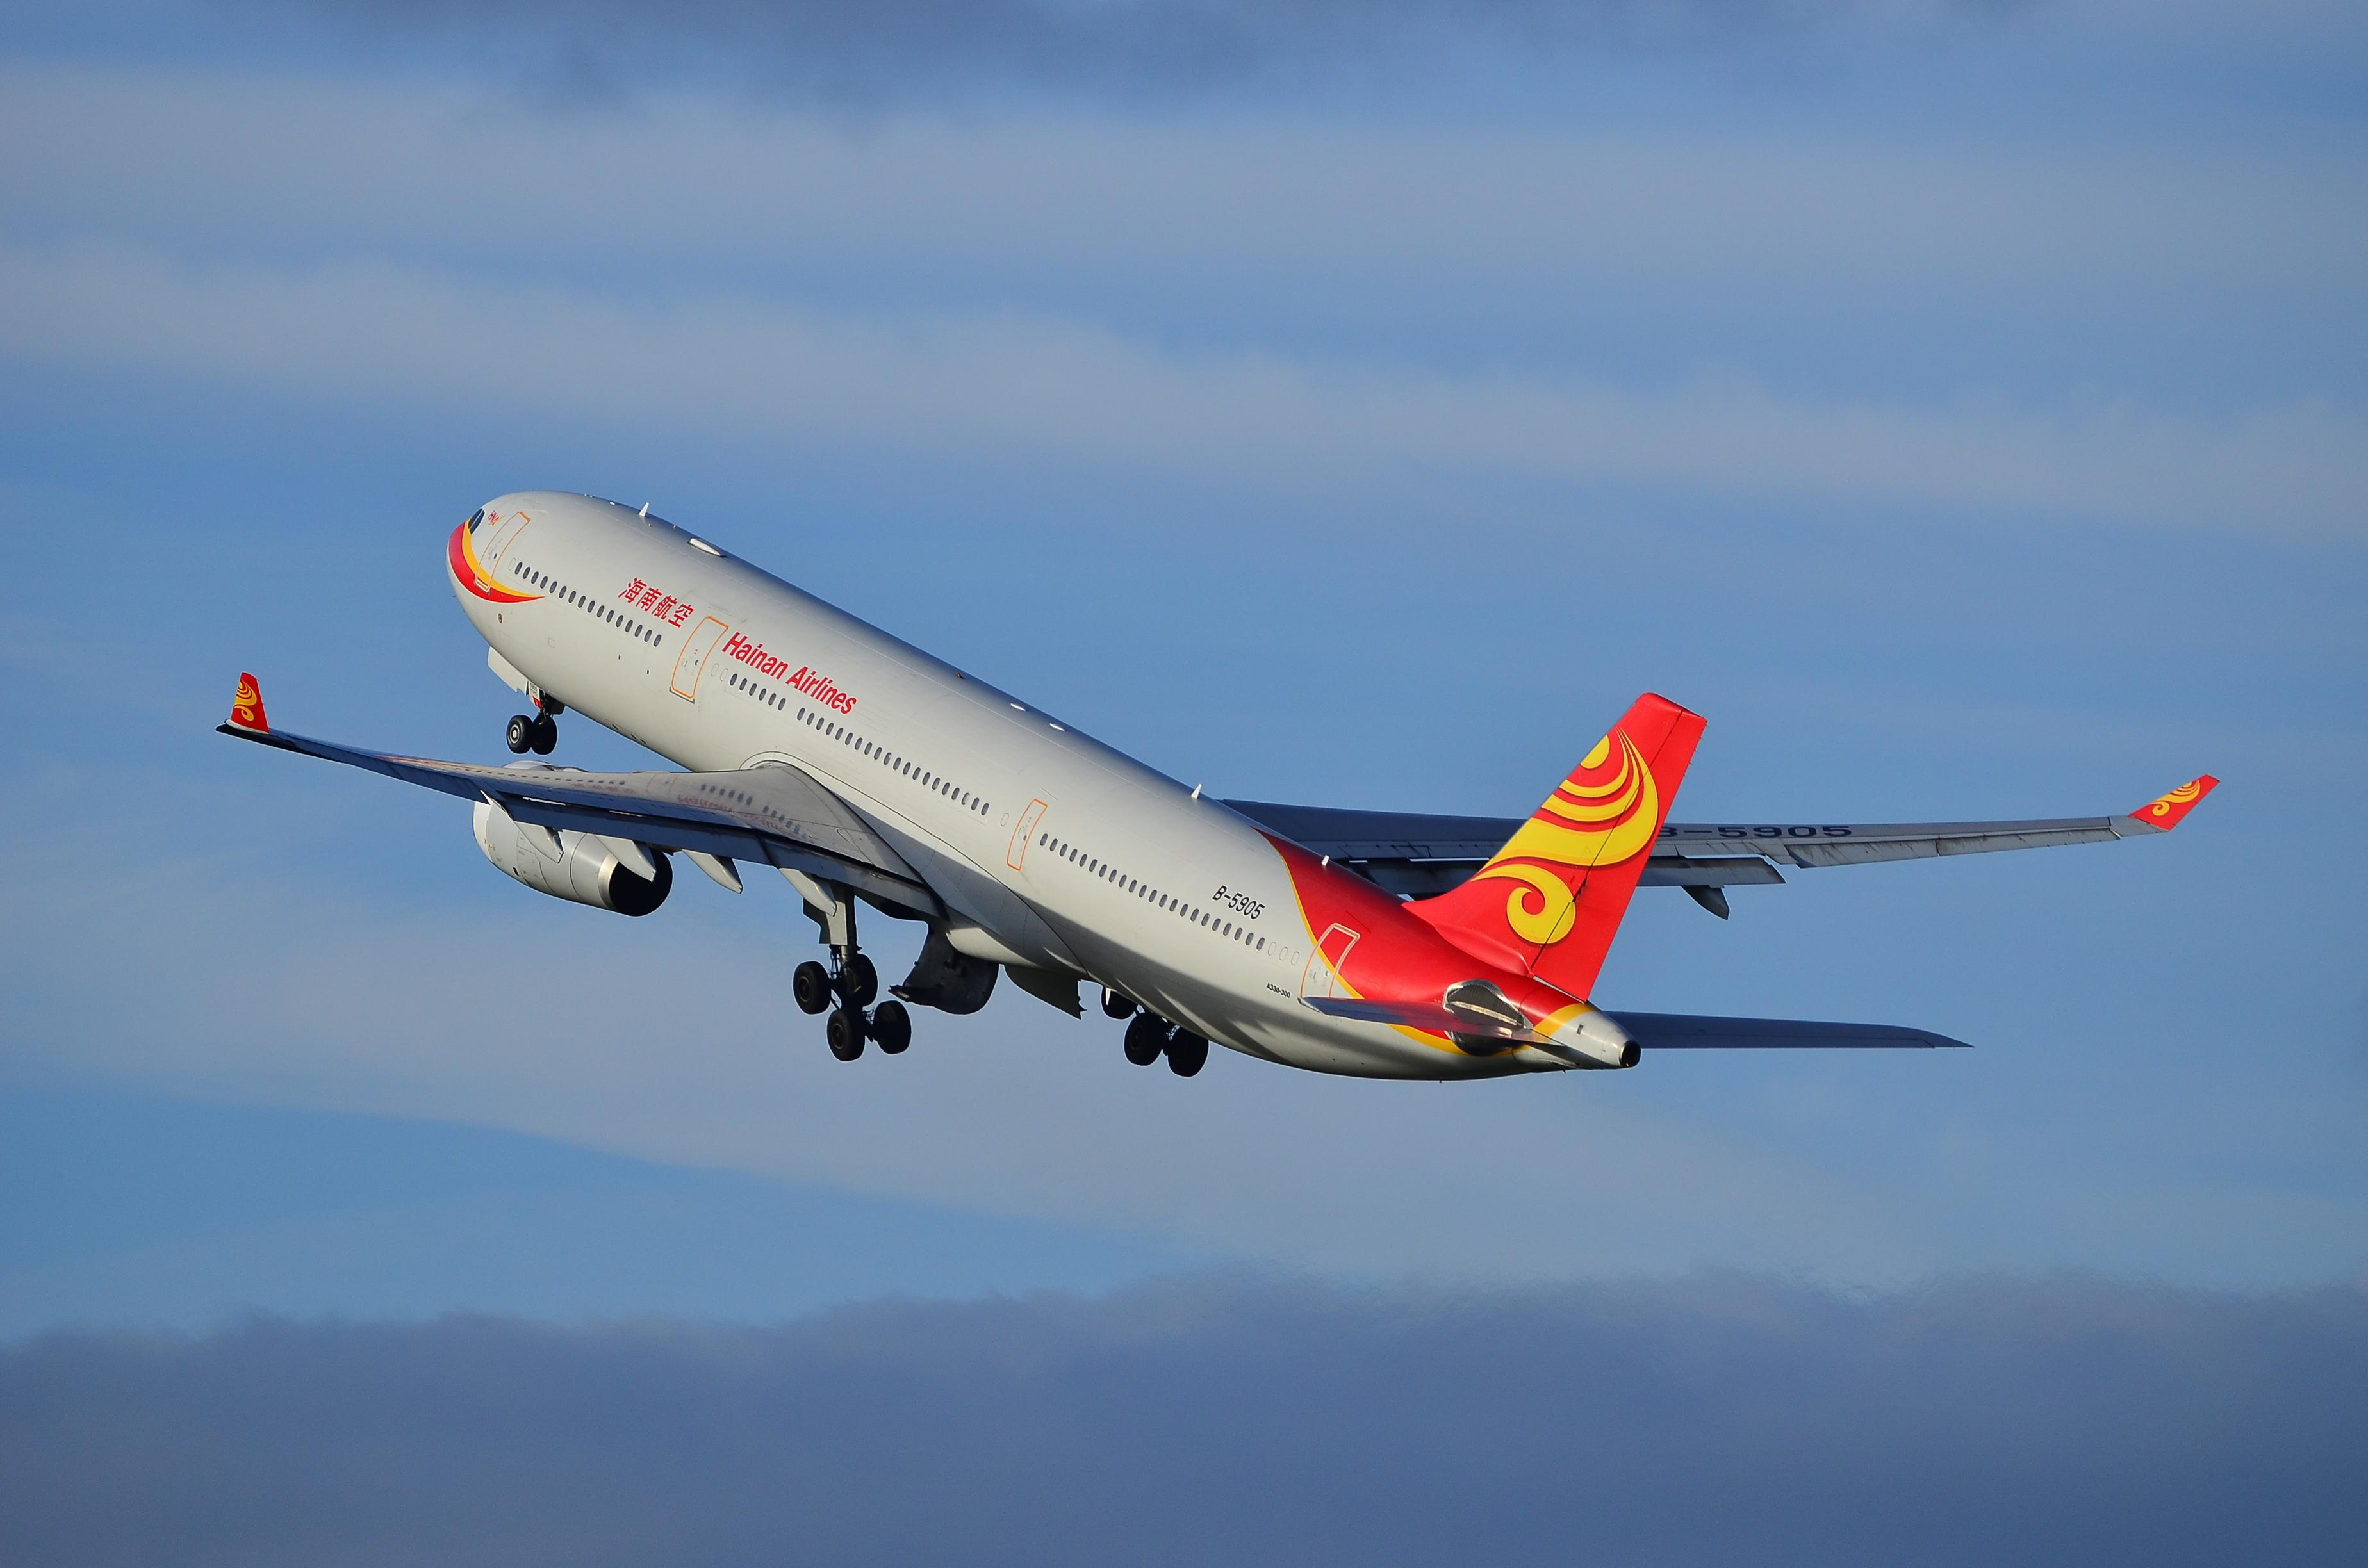 Hainan Airlines A330-300